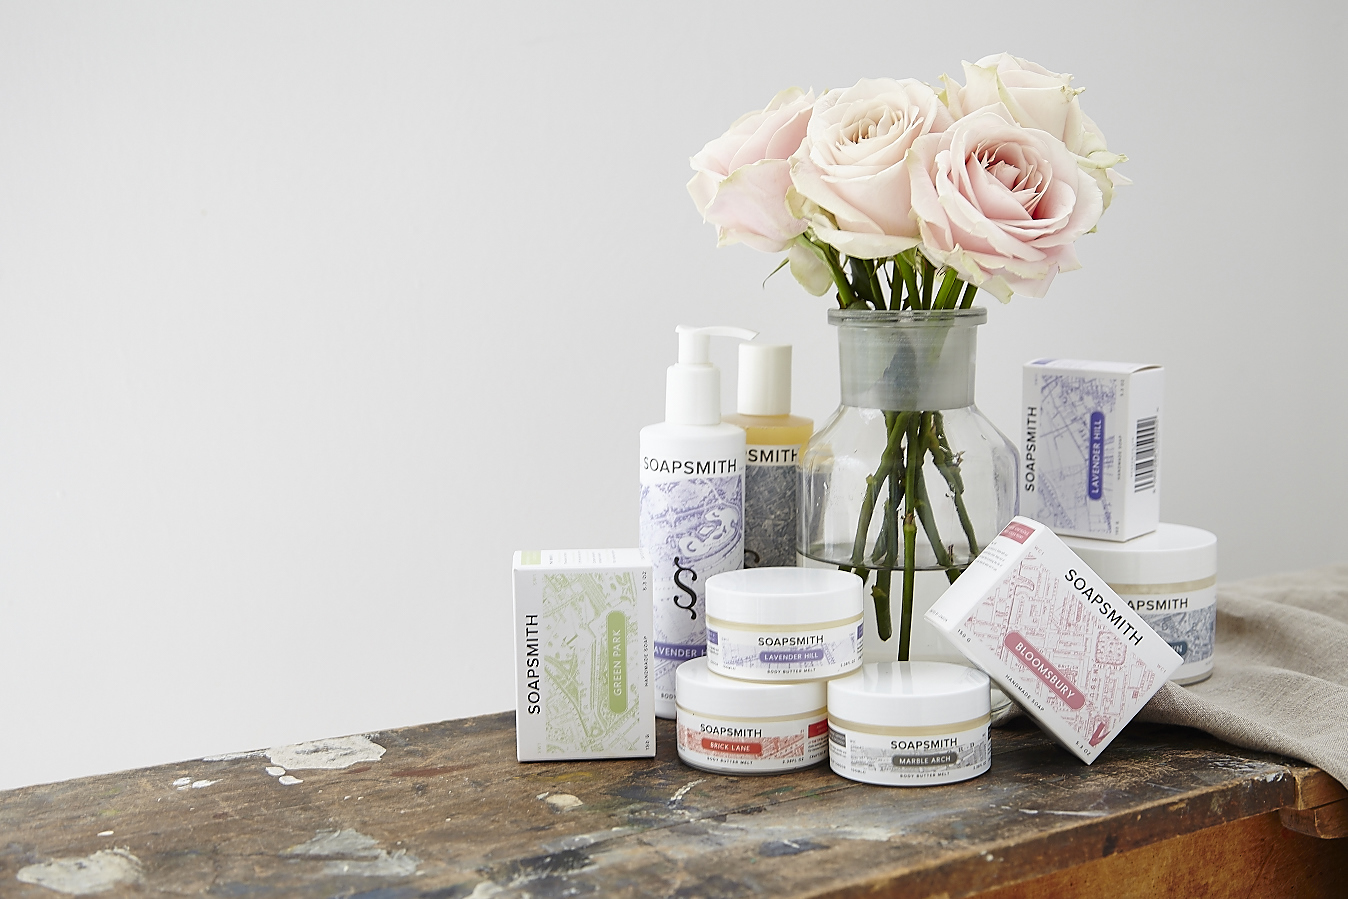 Heal's-made-in-london-soapsmith-1